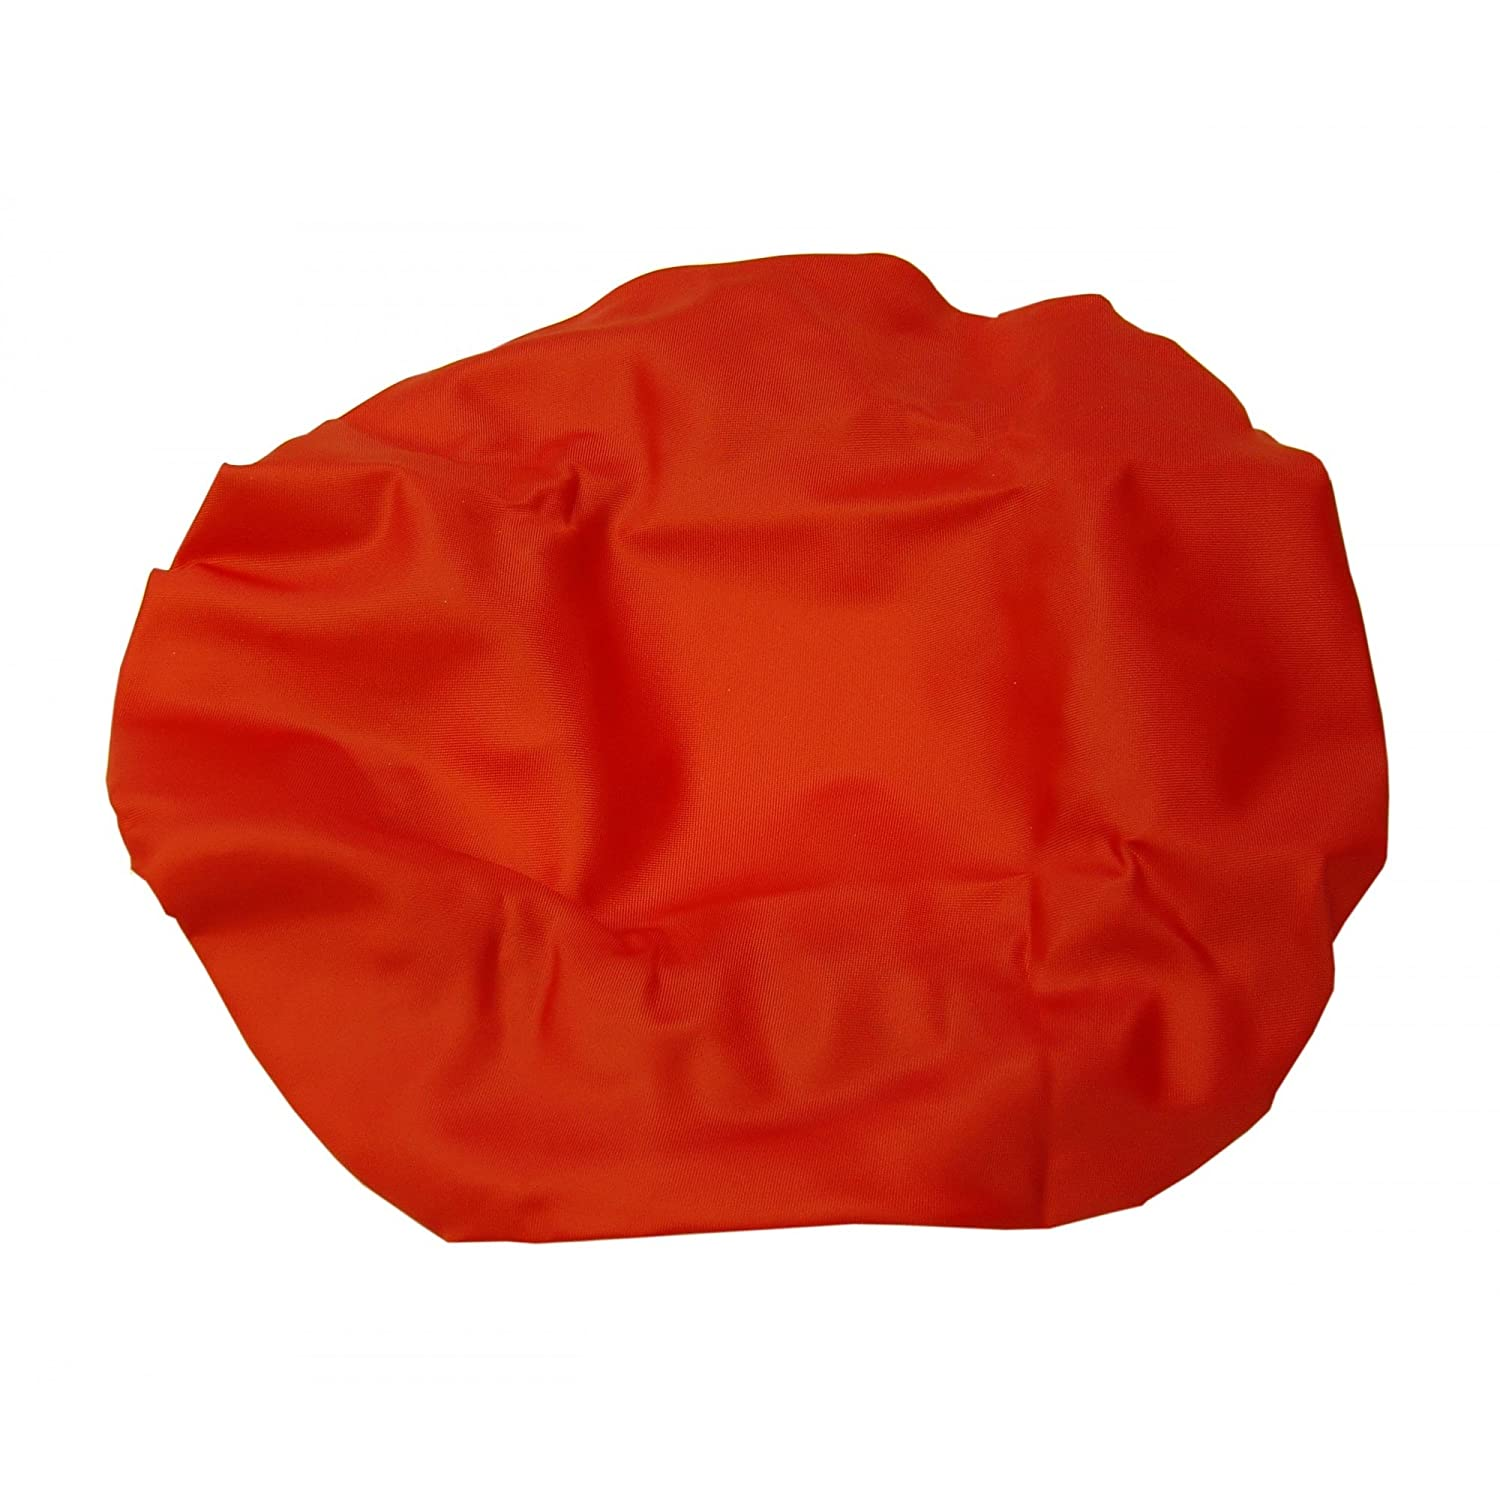 Bitz Water Bucket Cover (One Size) (Red) UTTL1189_6